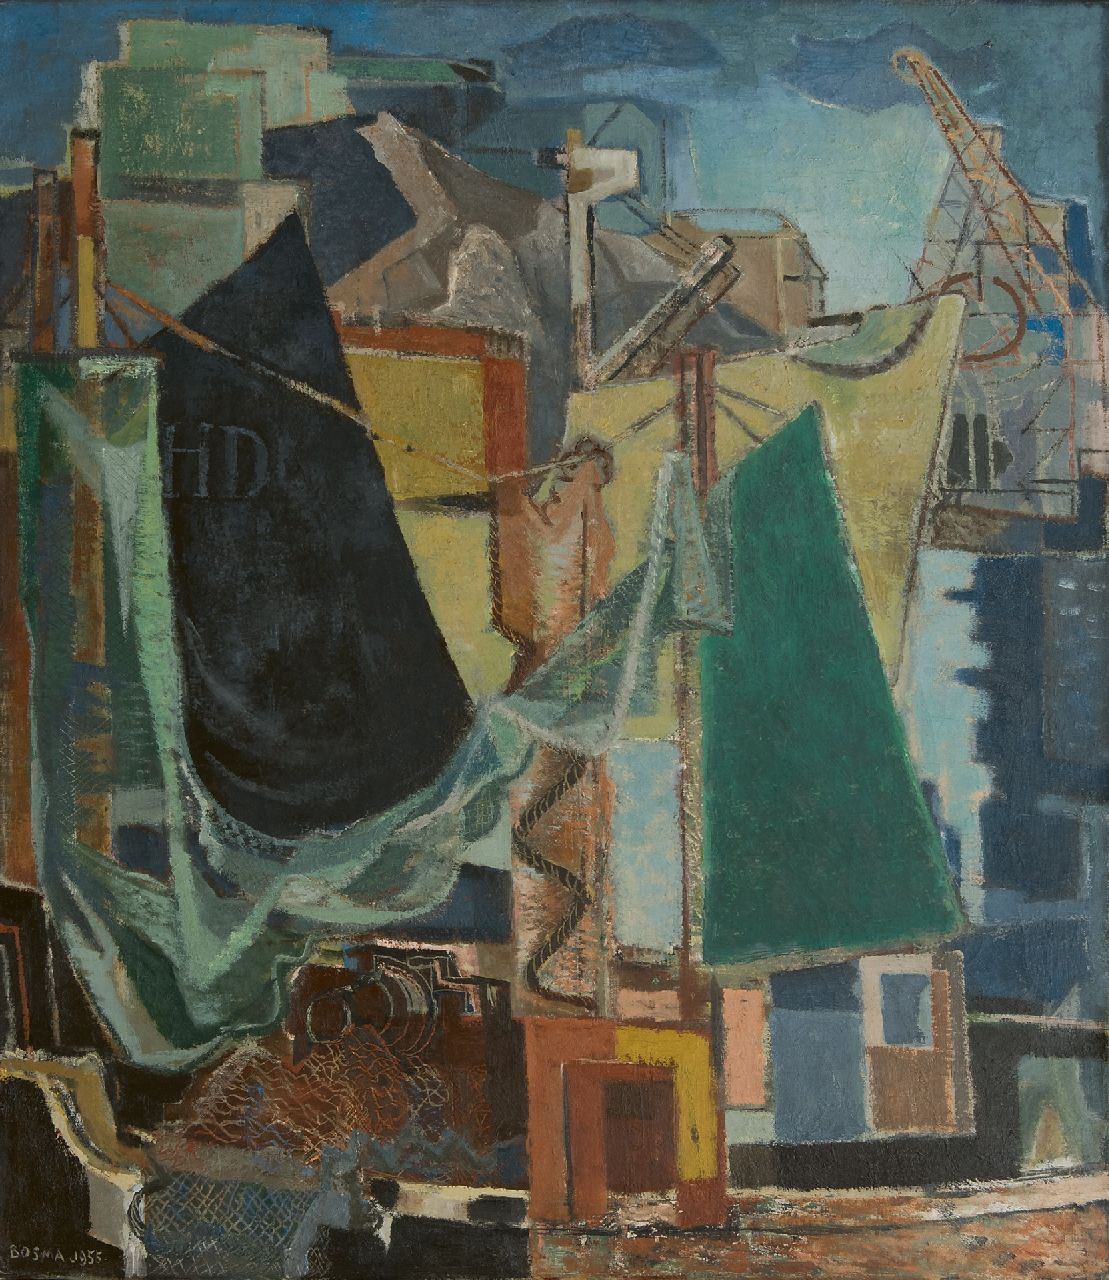 Bosma W.  | Willem 'Wim' Bosma, A harbour, oil on canvas 109.8 x 95.2 cm, signed l.l. and dated 1955